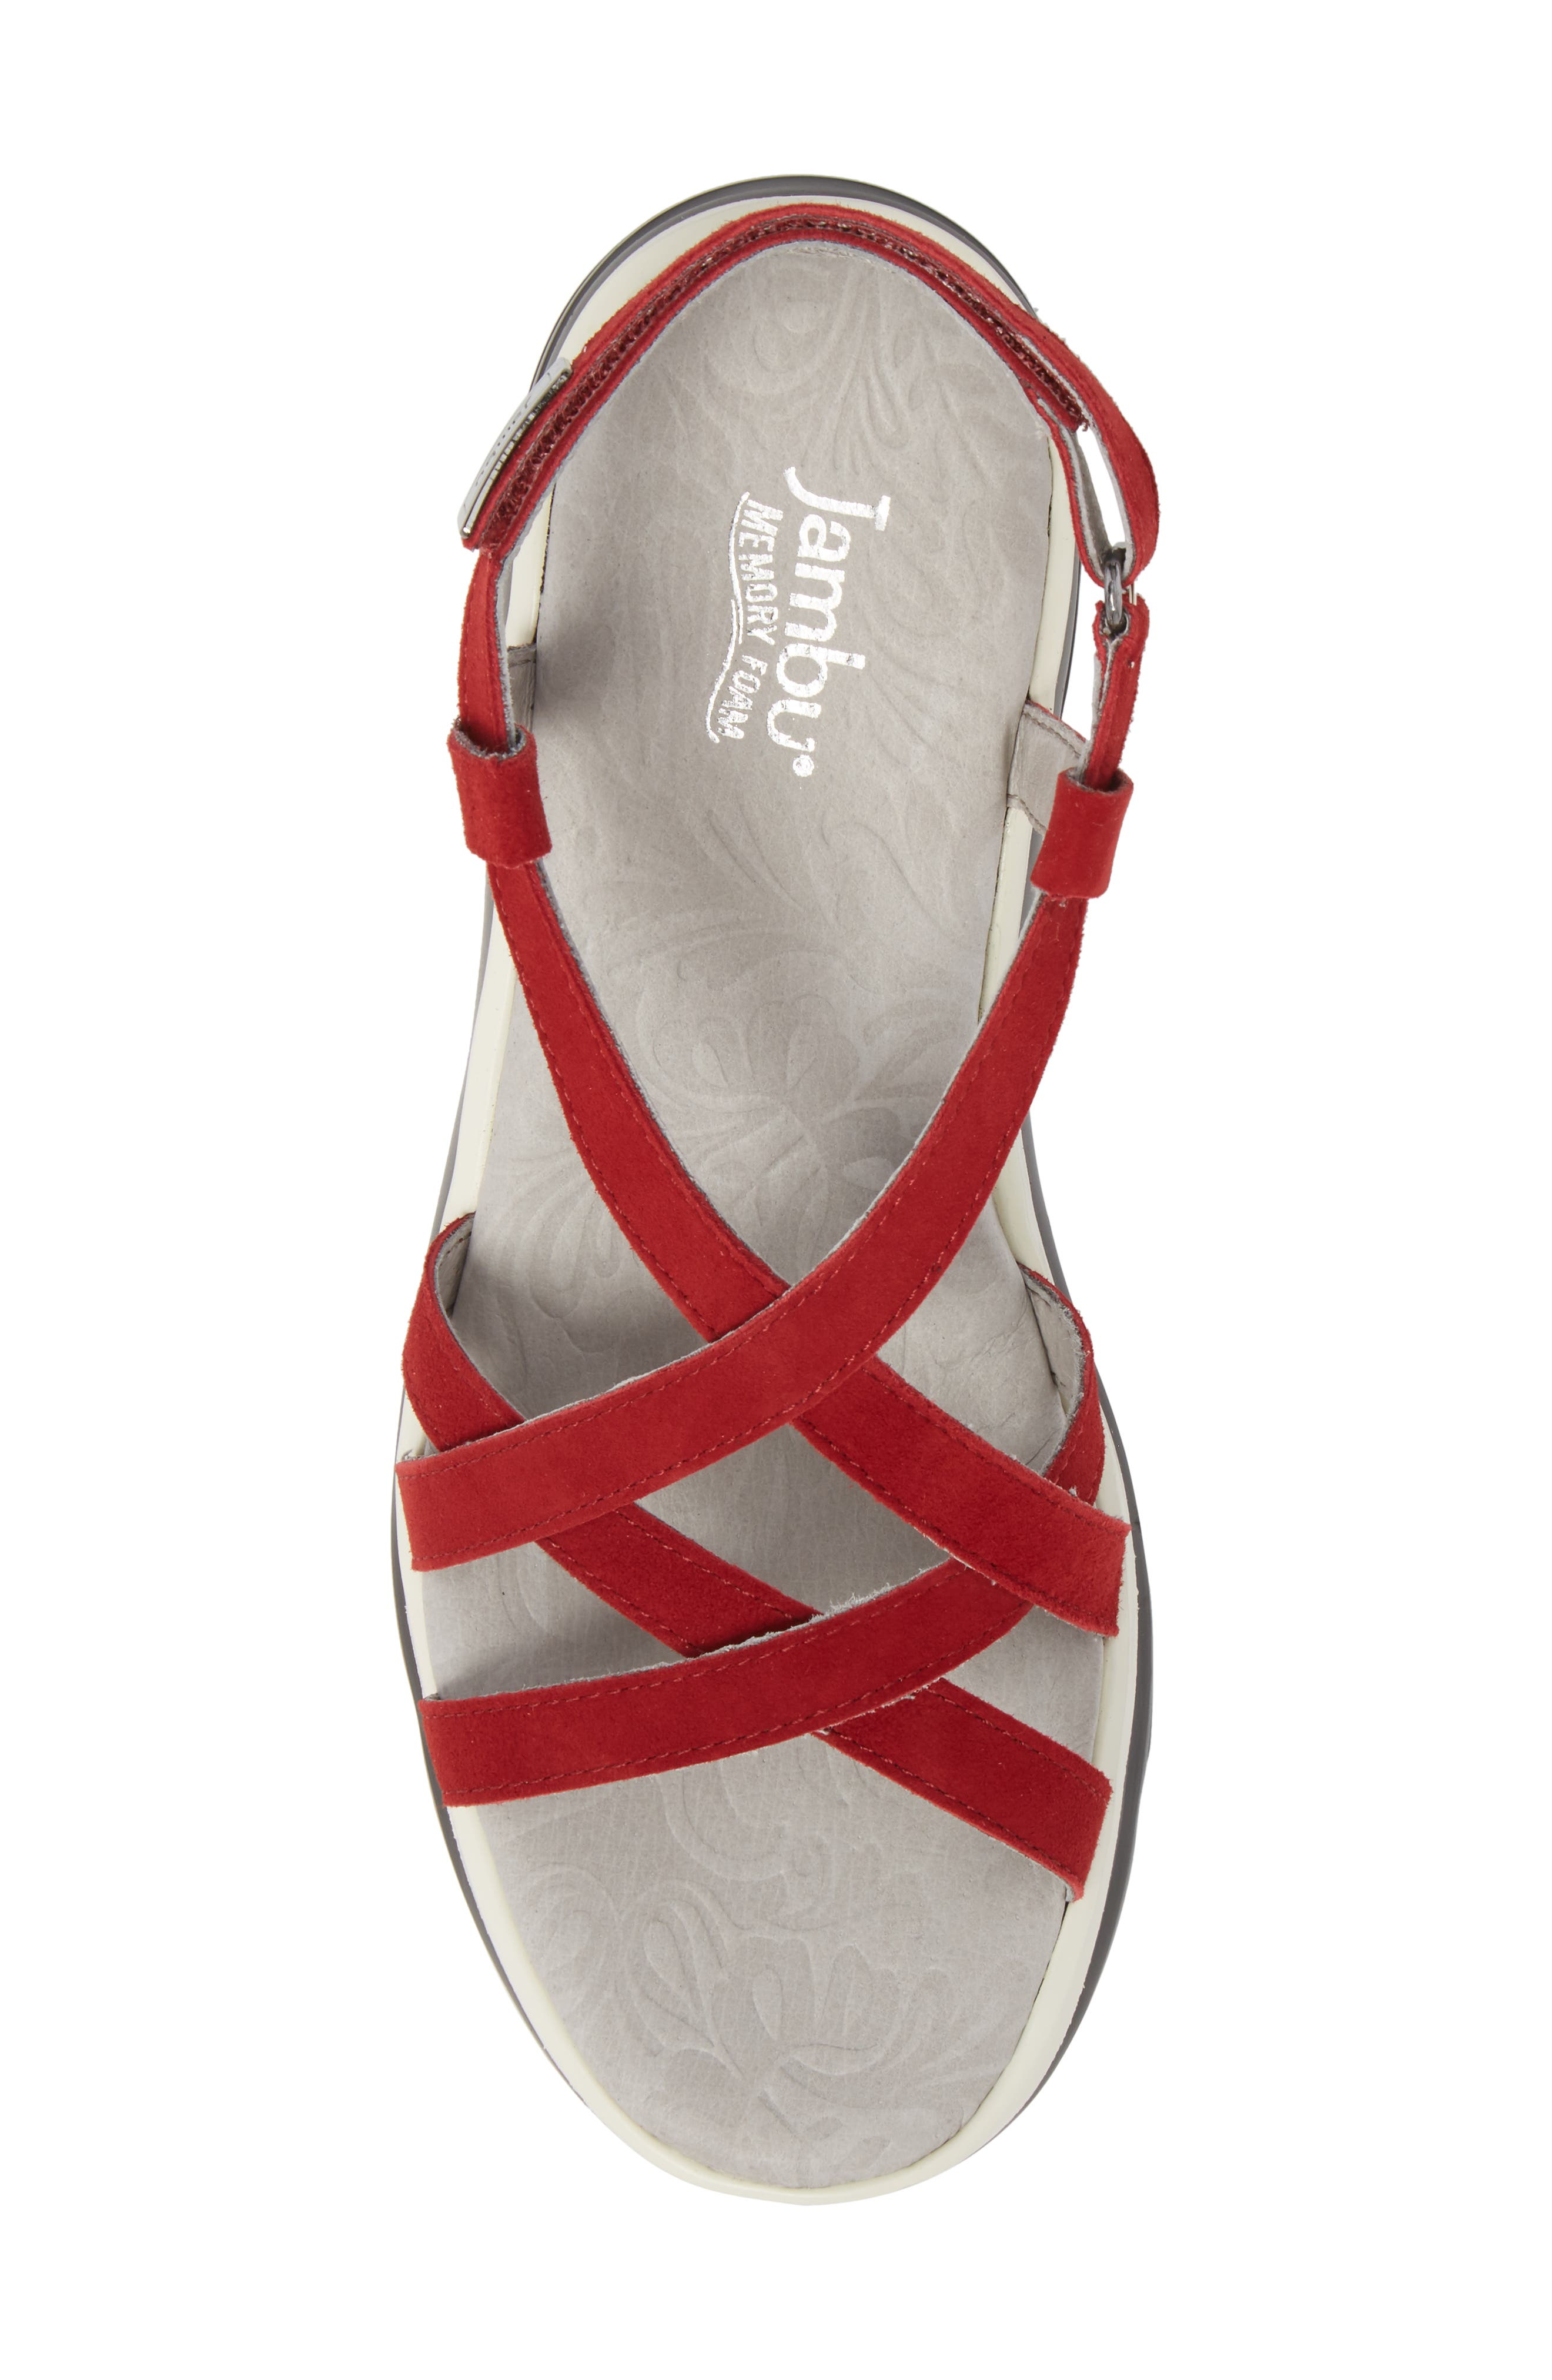 Ginger Wedge Sandal,                             Alternate thumbnail 5, color,                             Red Suede